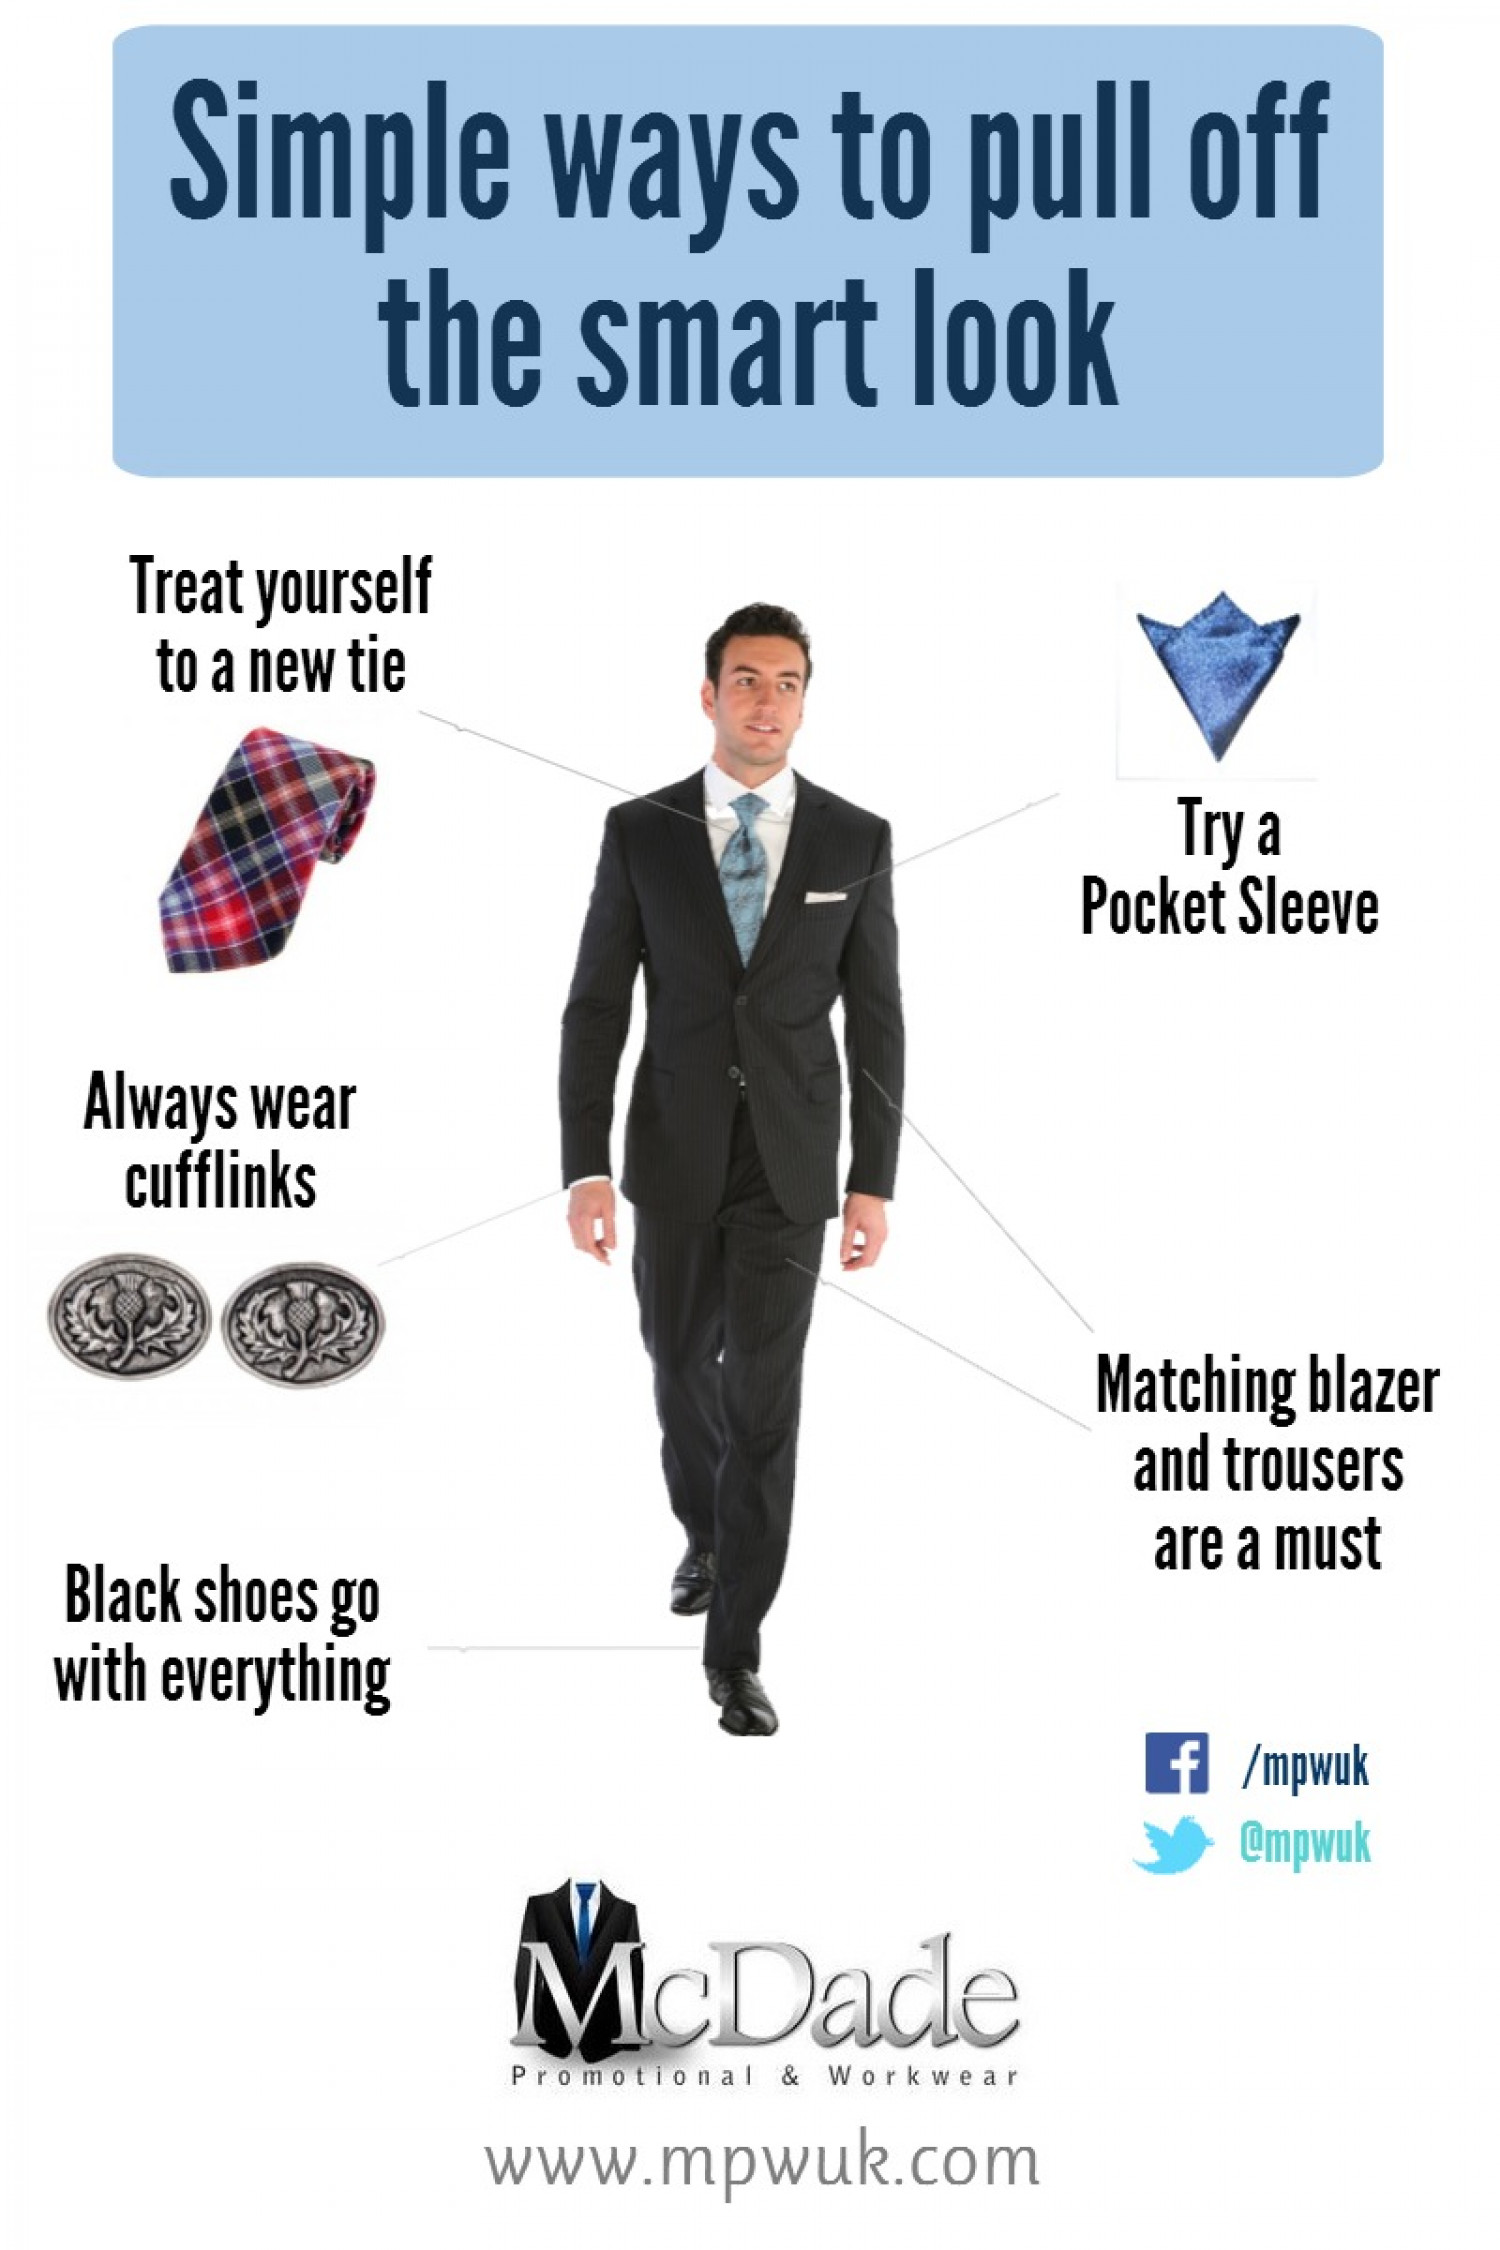 Simple Ways To Pull Off The Smart Look Infographic